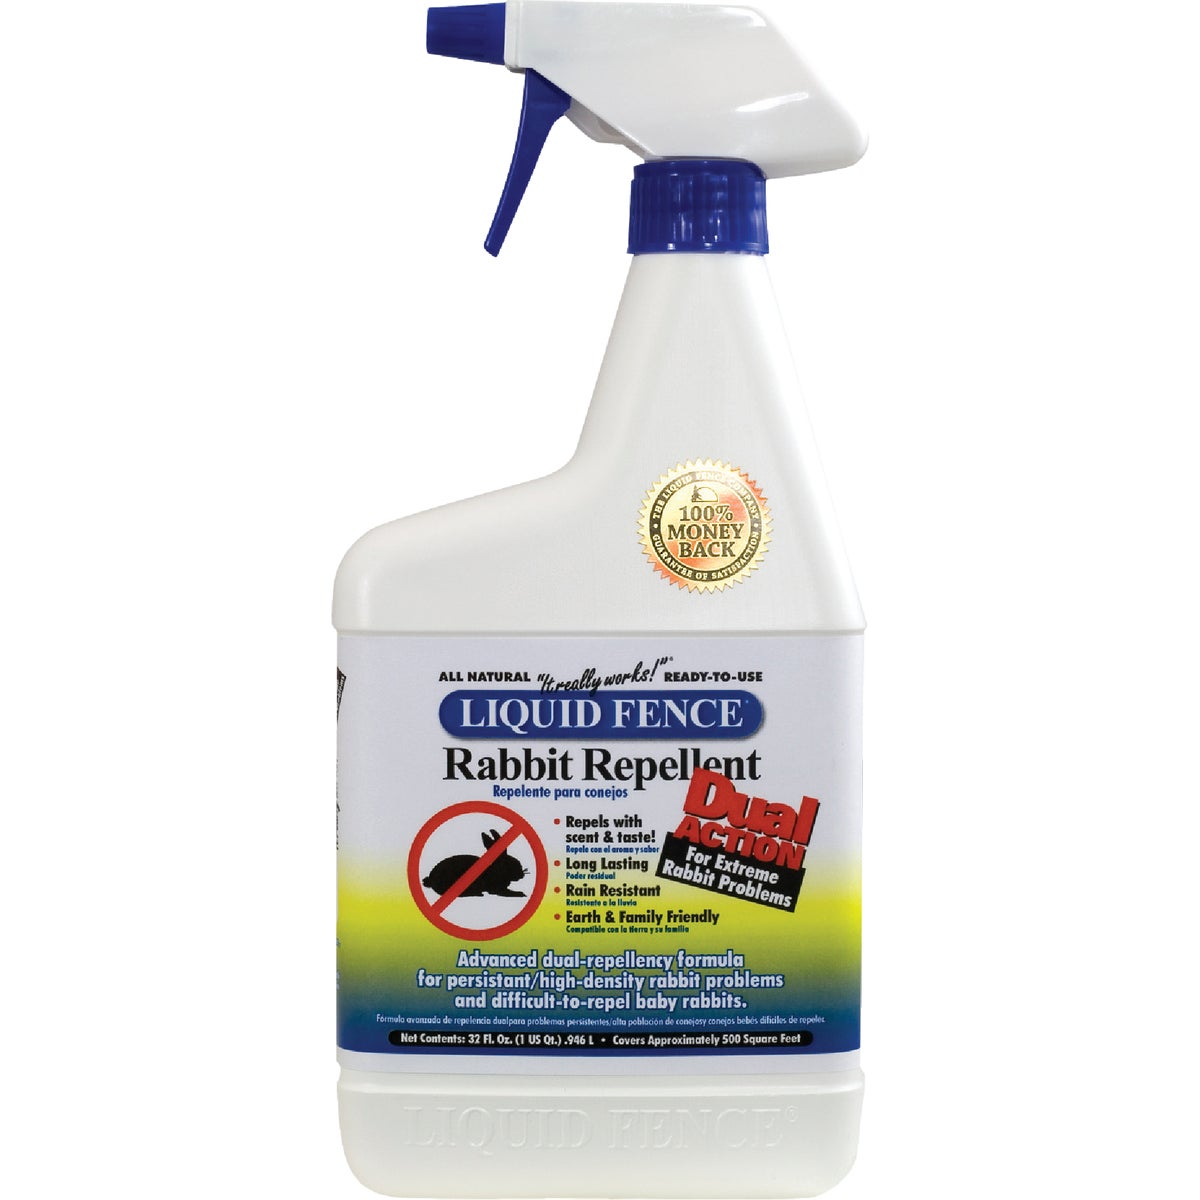 QT LF RABBIT REPELLENT - 212 by Liquid Fence Co Inc